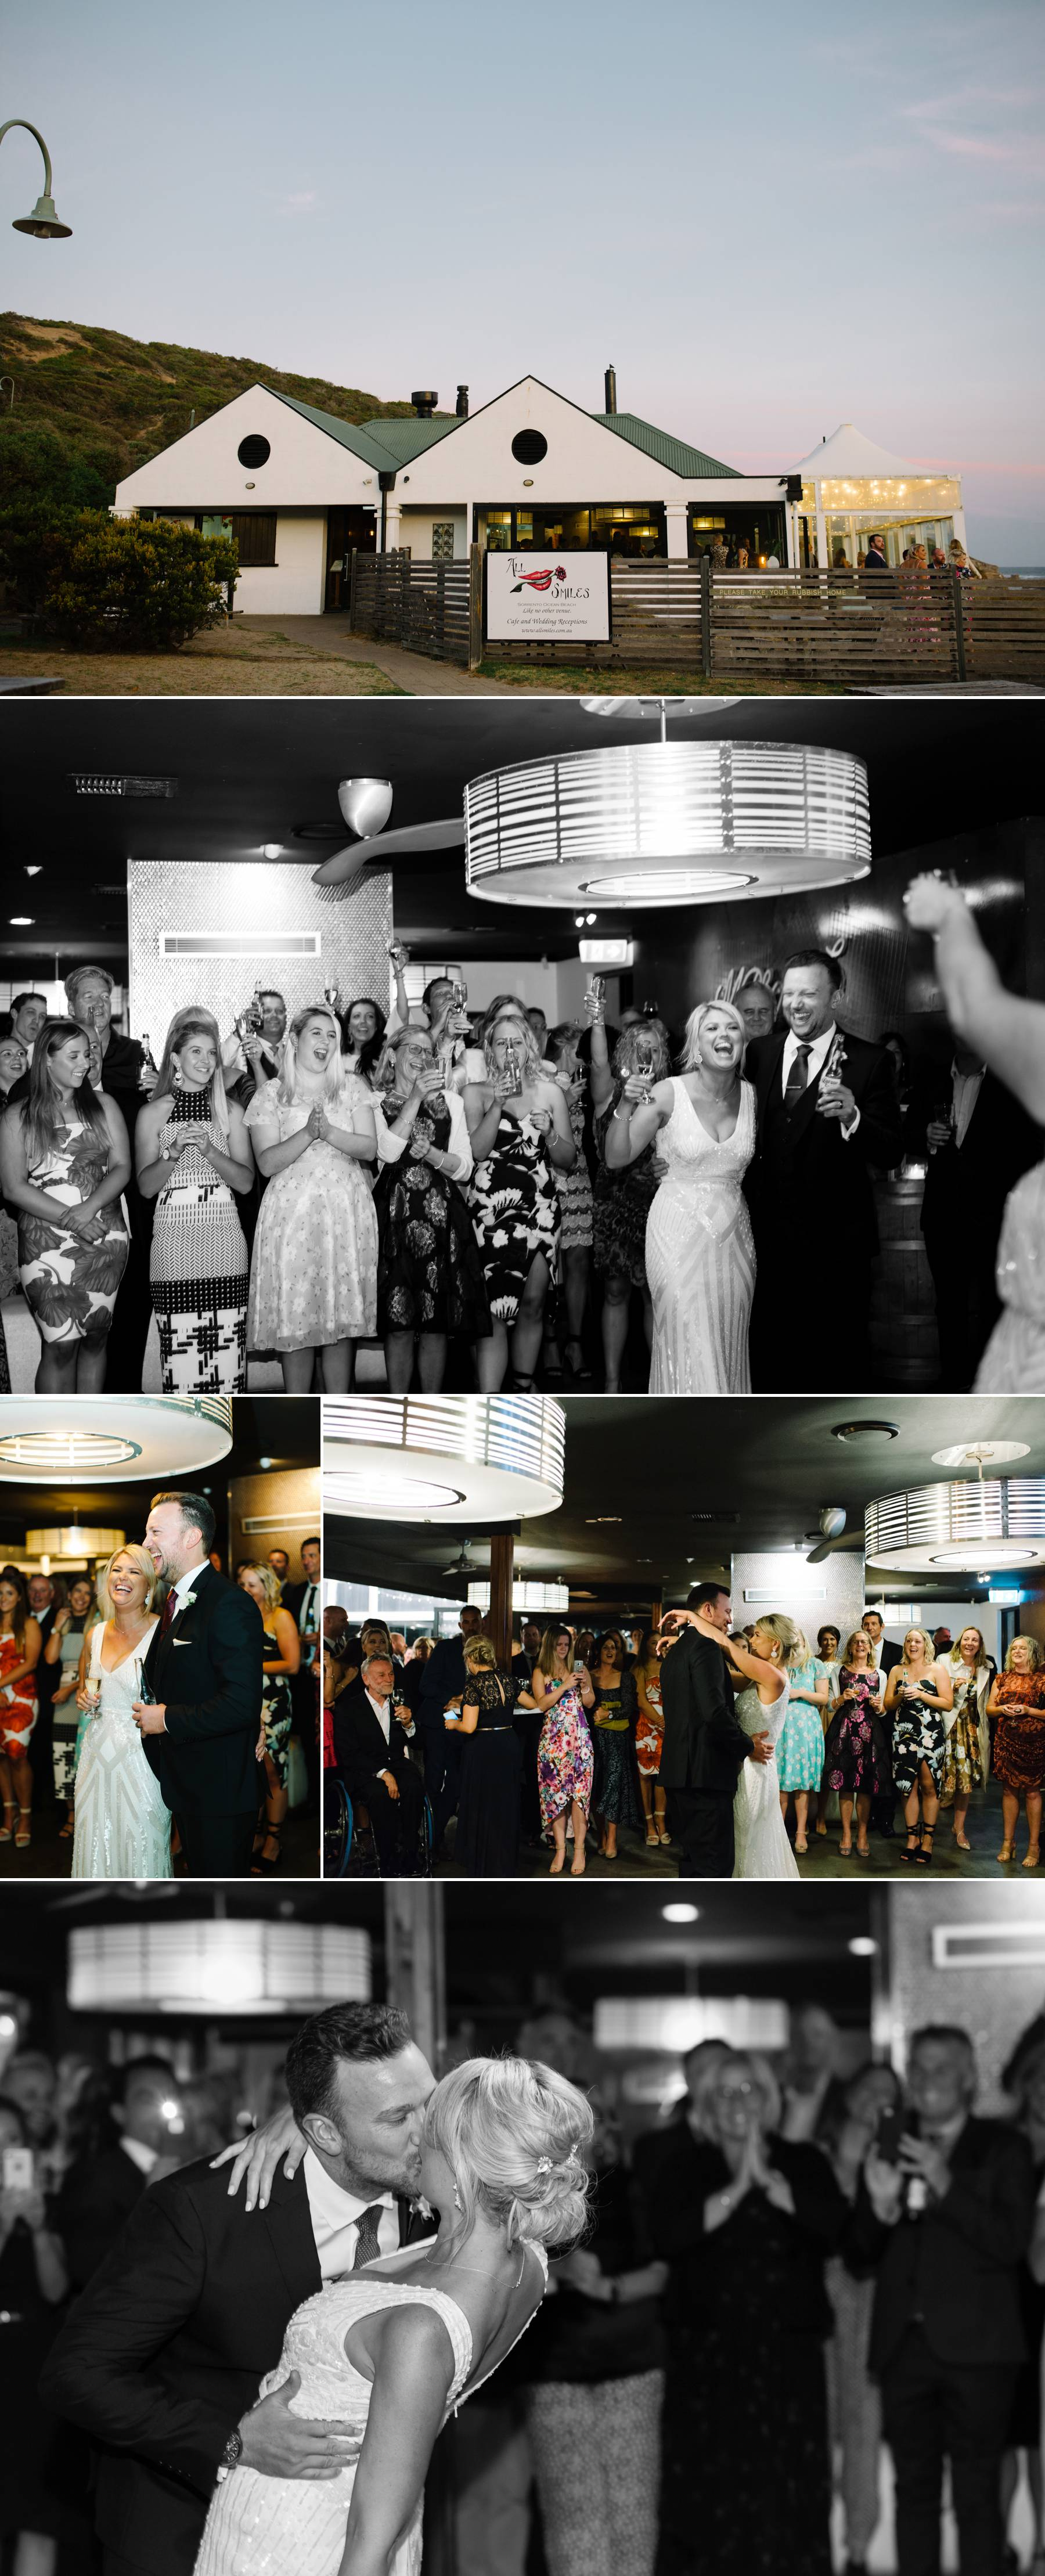 Wedding reception at All Smiles photography by Michelle Pragt